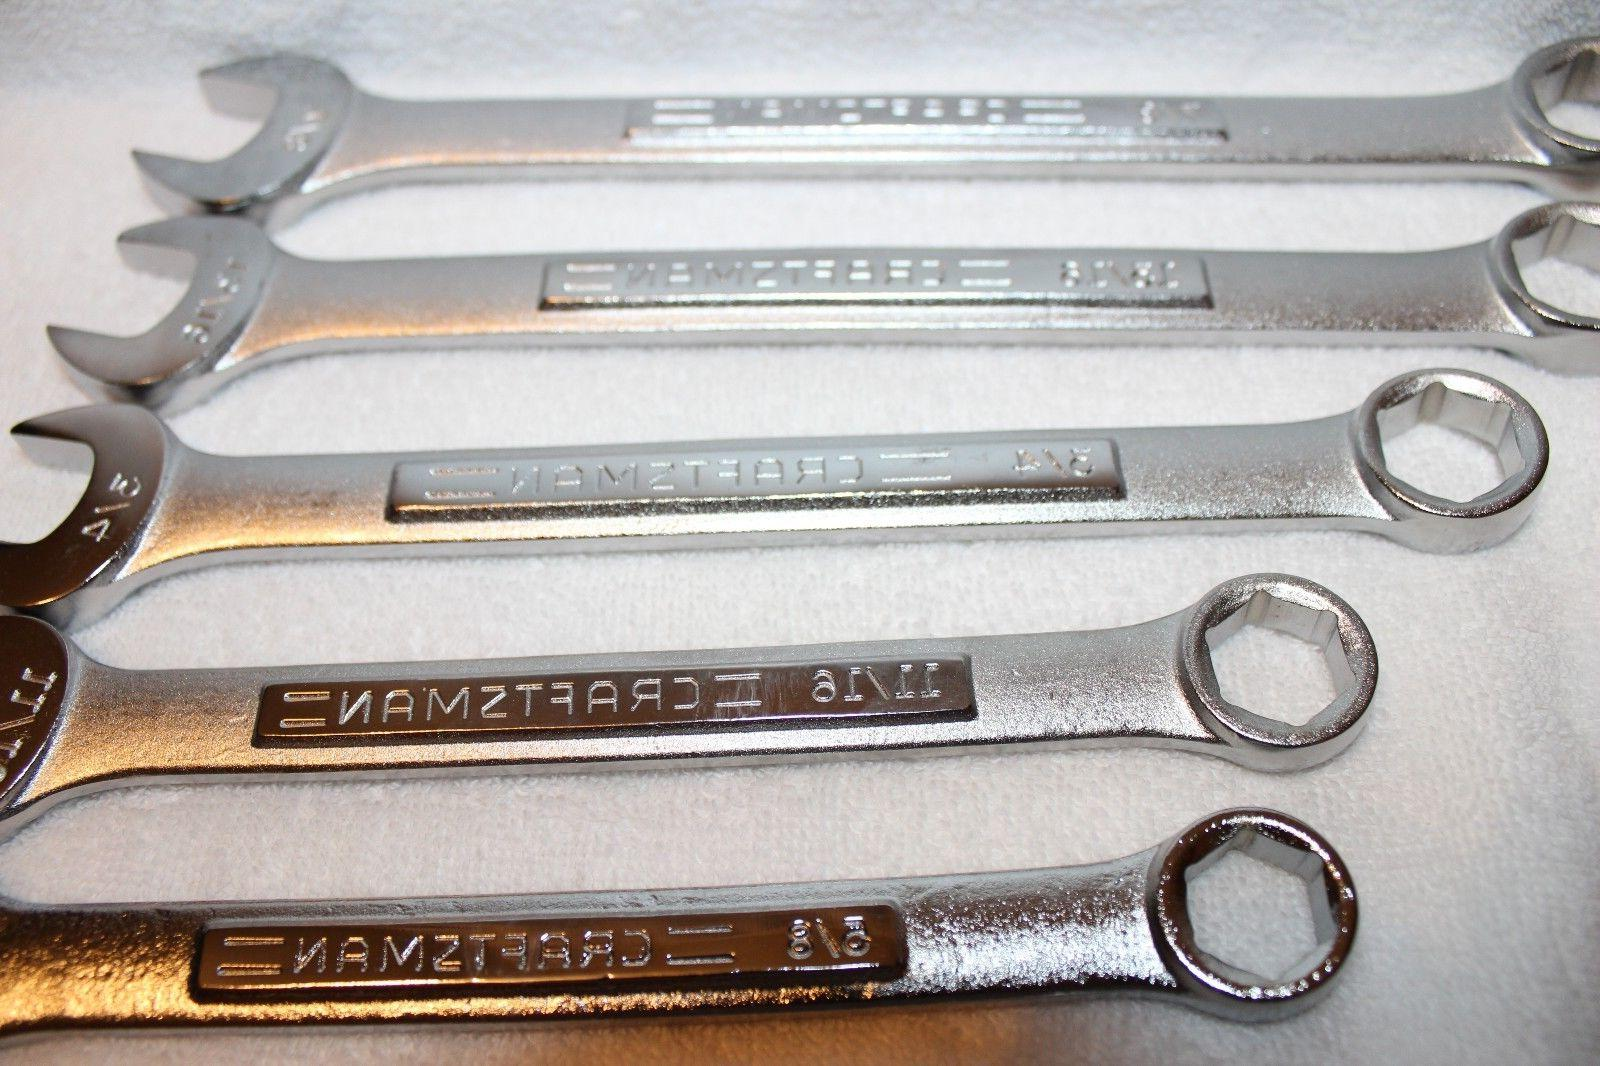 NEW Craftsman Combination Wrench SAE